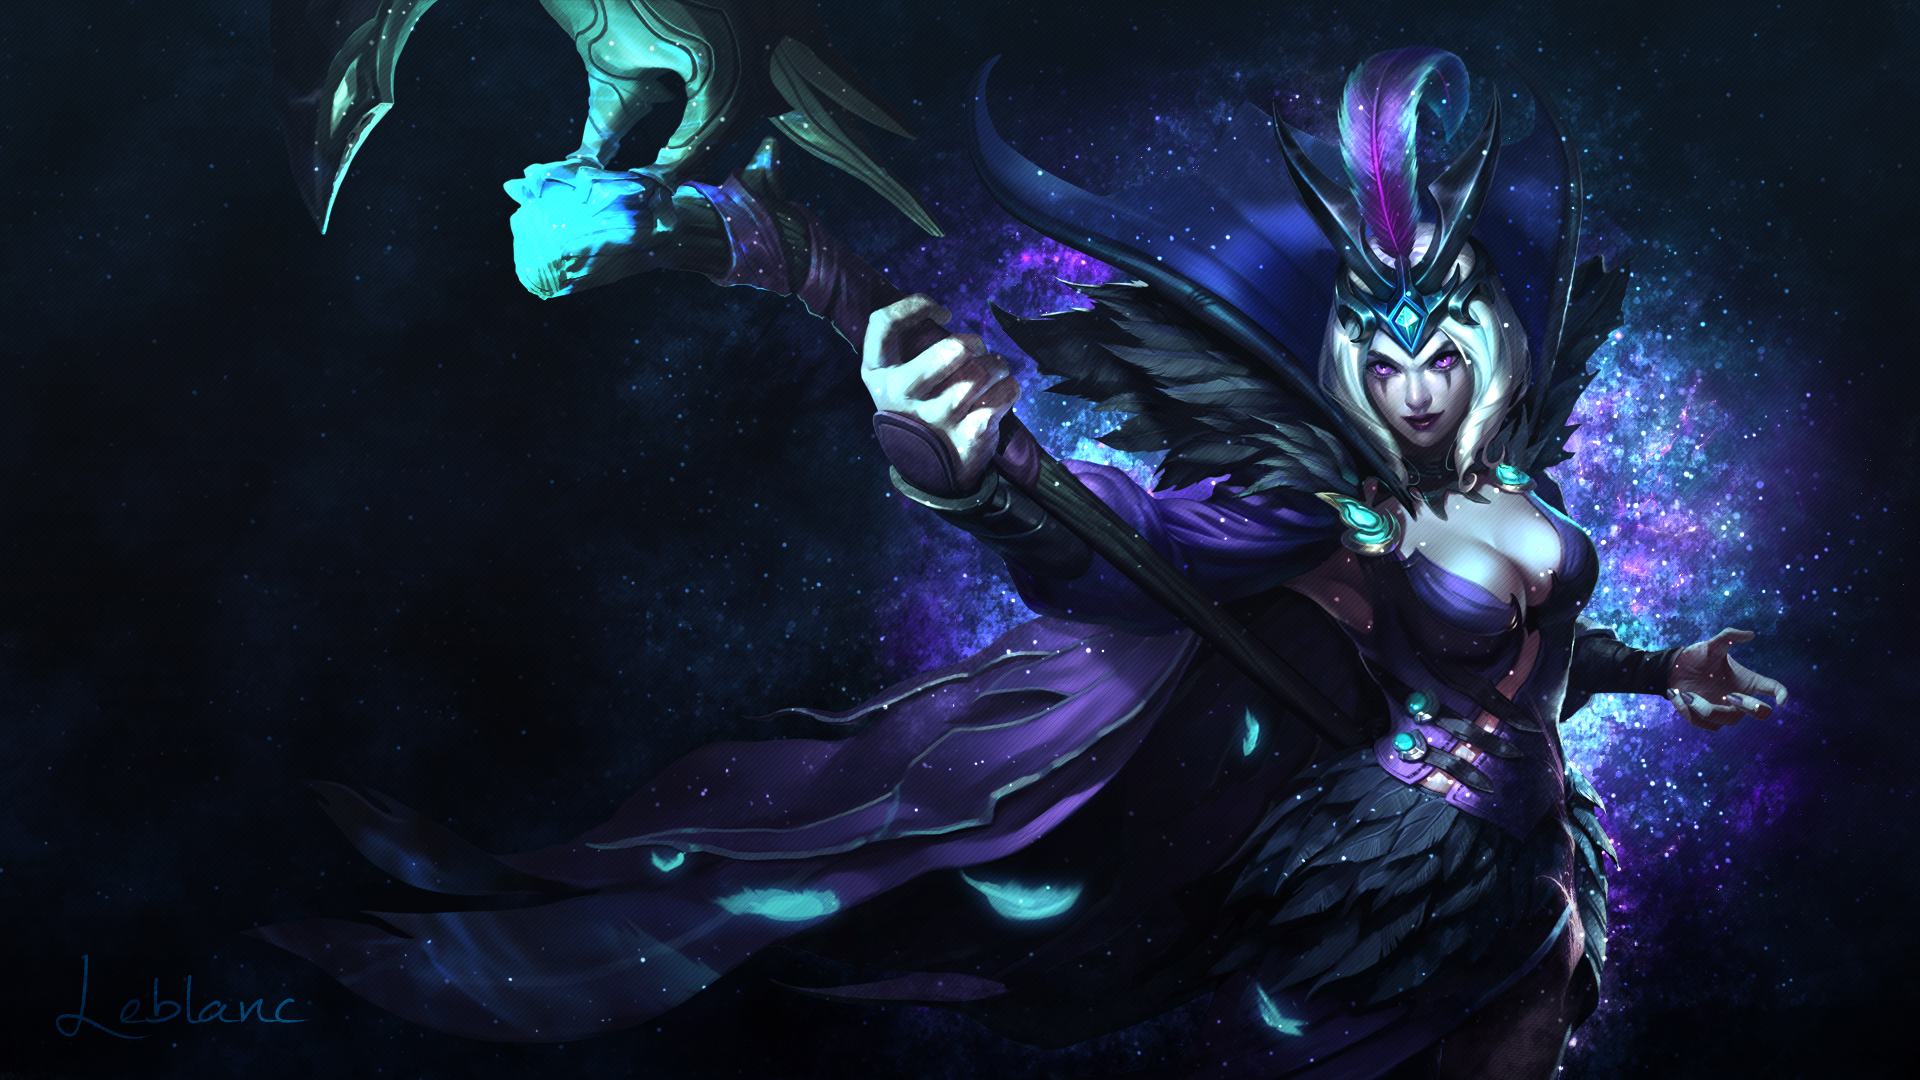 Leblanc lolwallpapers leblanc wallpaper voltagebd Images